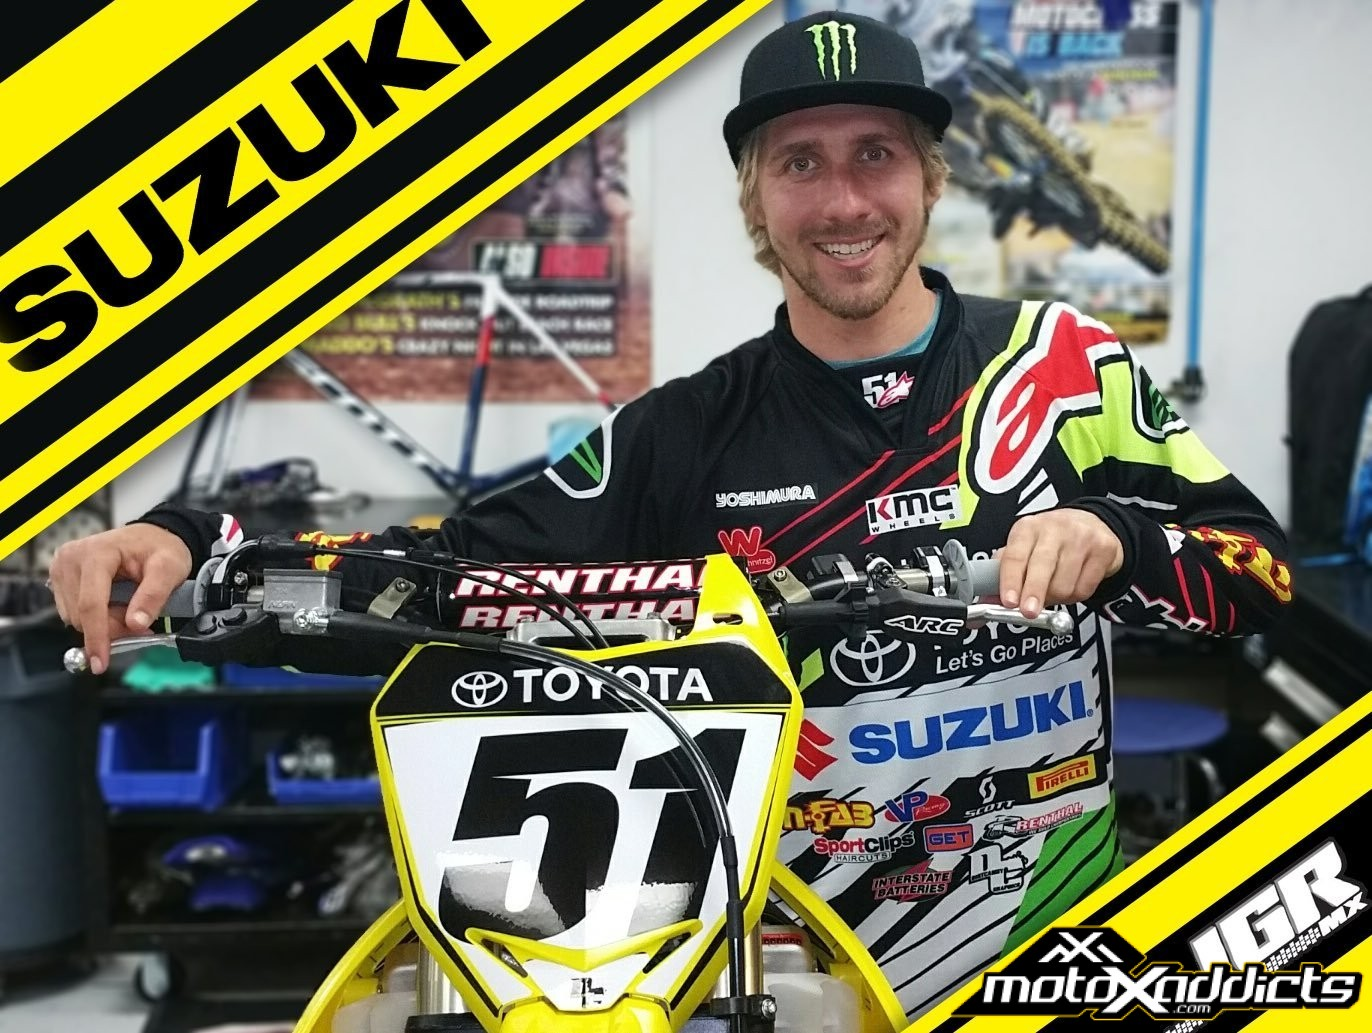 JGR Switches to Suzuki for 2017 – Barcia, Peick and Nicoletti on Board